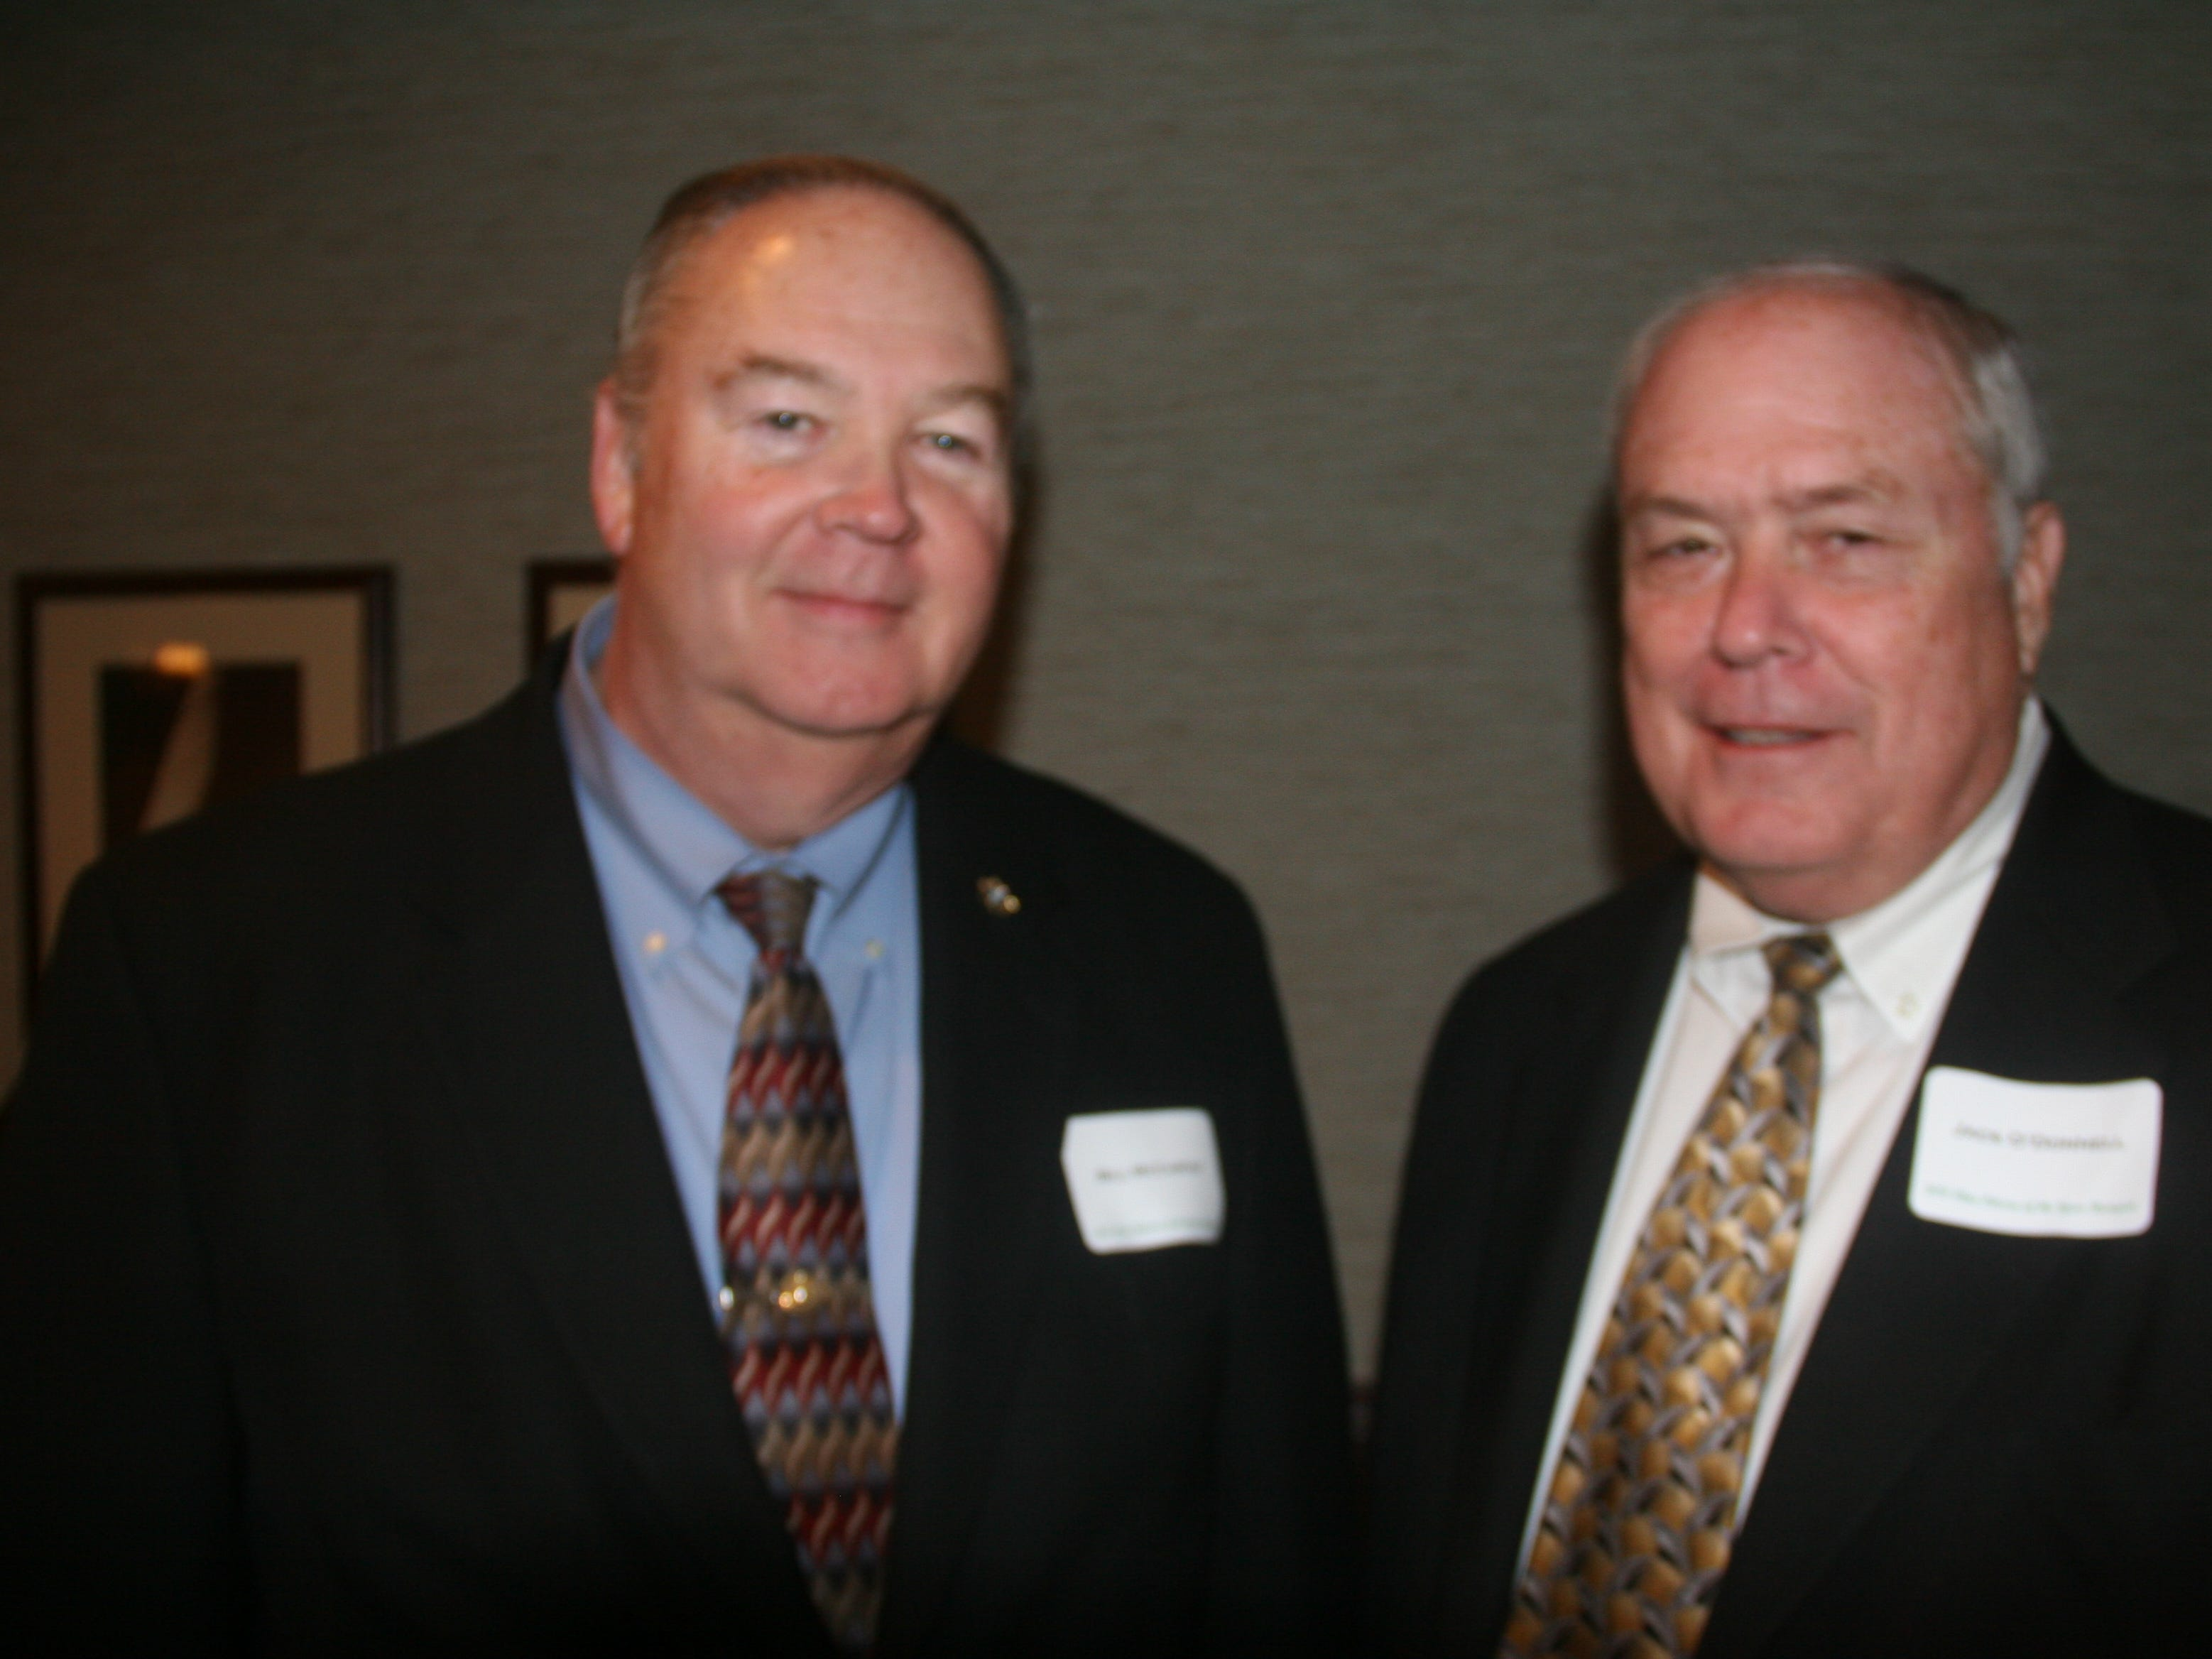 Bill McCarthy poses for a picture with then-West Des Moines Chief of Police Jack O'Donnell during the 32nd annual Clive Citizen of the Year Banquet at Walnut Ridge in Clive on Feb. 28, 2011. The event honored Robert Brownell, a former Clive mayor and current member of the Polk County Board of Supervisors.